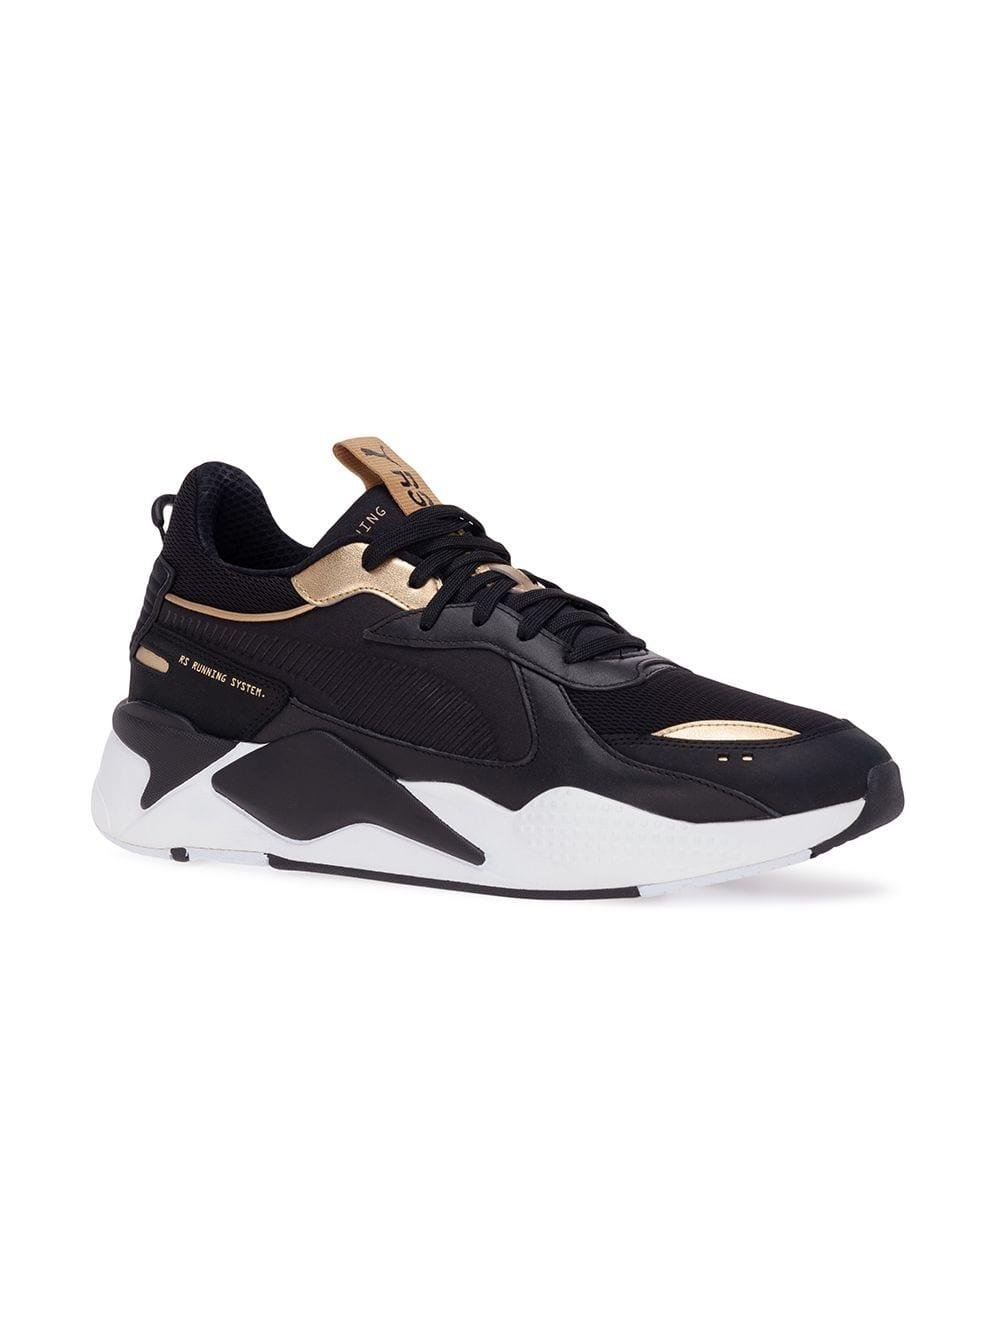 d4fe824134cb Lyst - PUMA Rs-x Trophy Sneakers in Black for Men